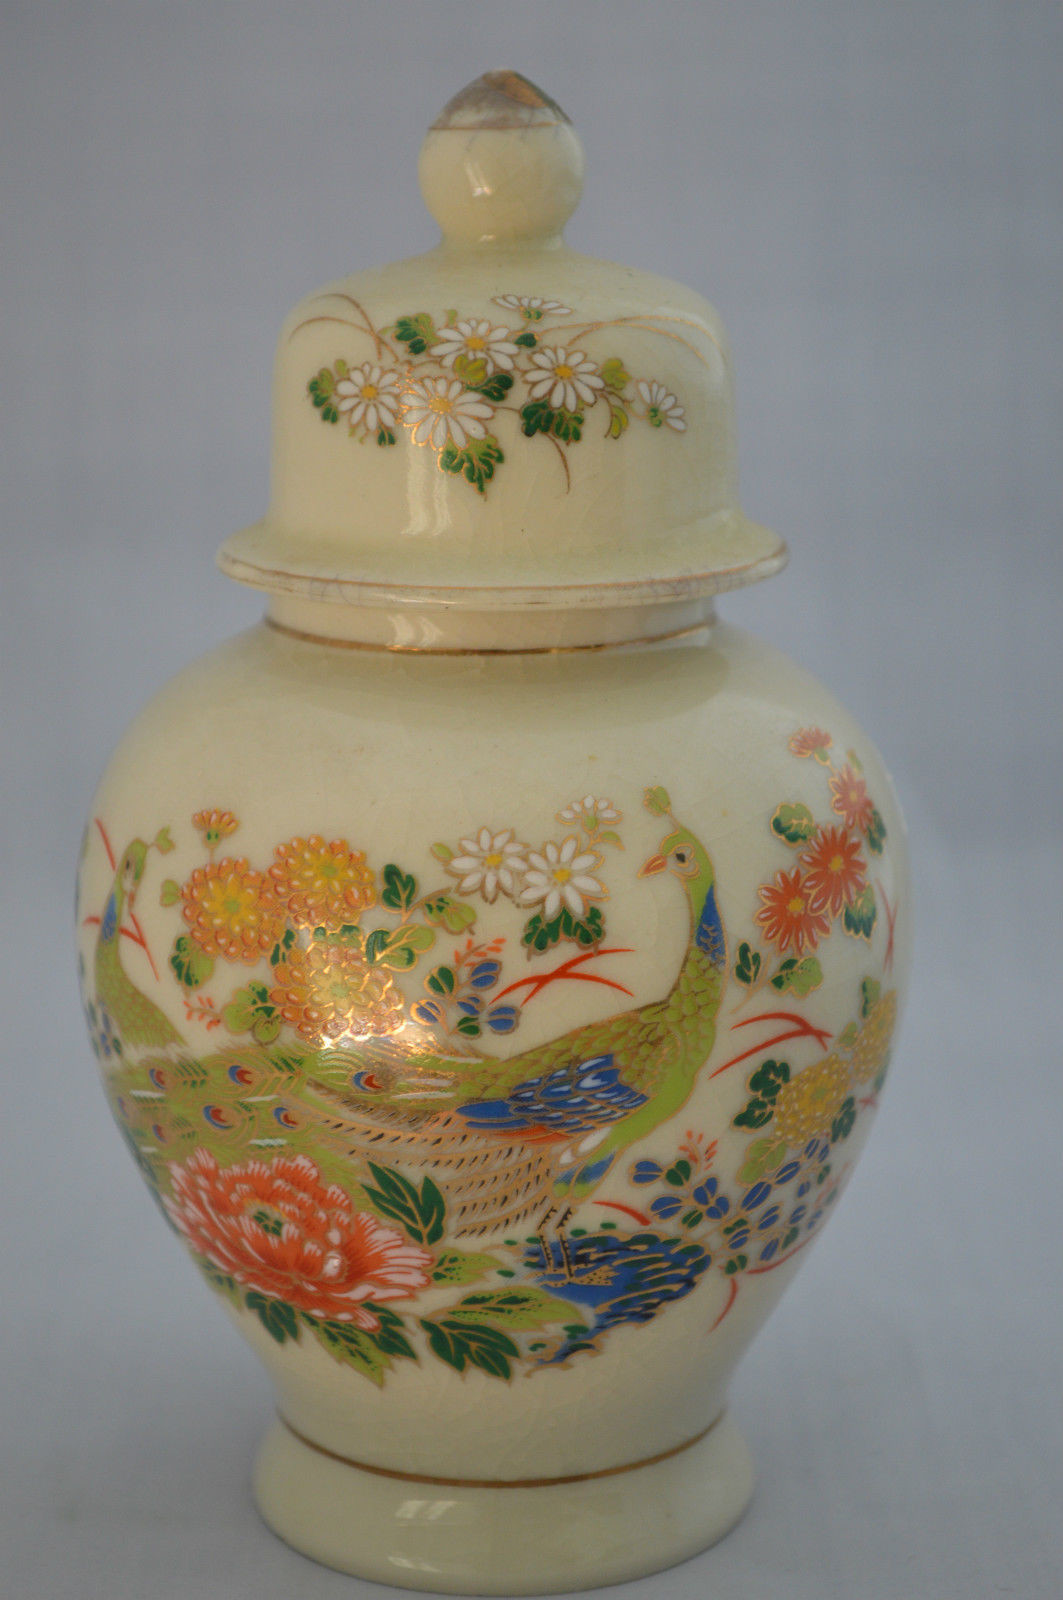 Antique Japanese Porcelain Vases Of Vase Lid Ginger Jar oriental asian Japanese Decor Accent Peacock for 1 Of 10only 1 Available